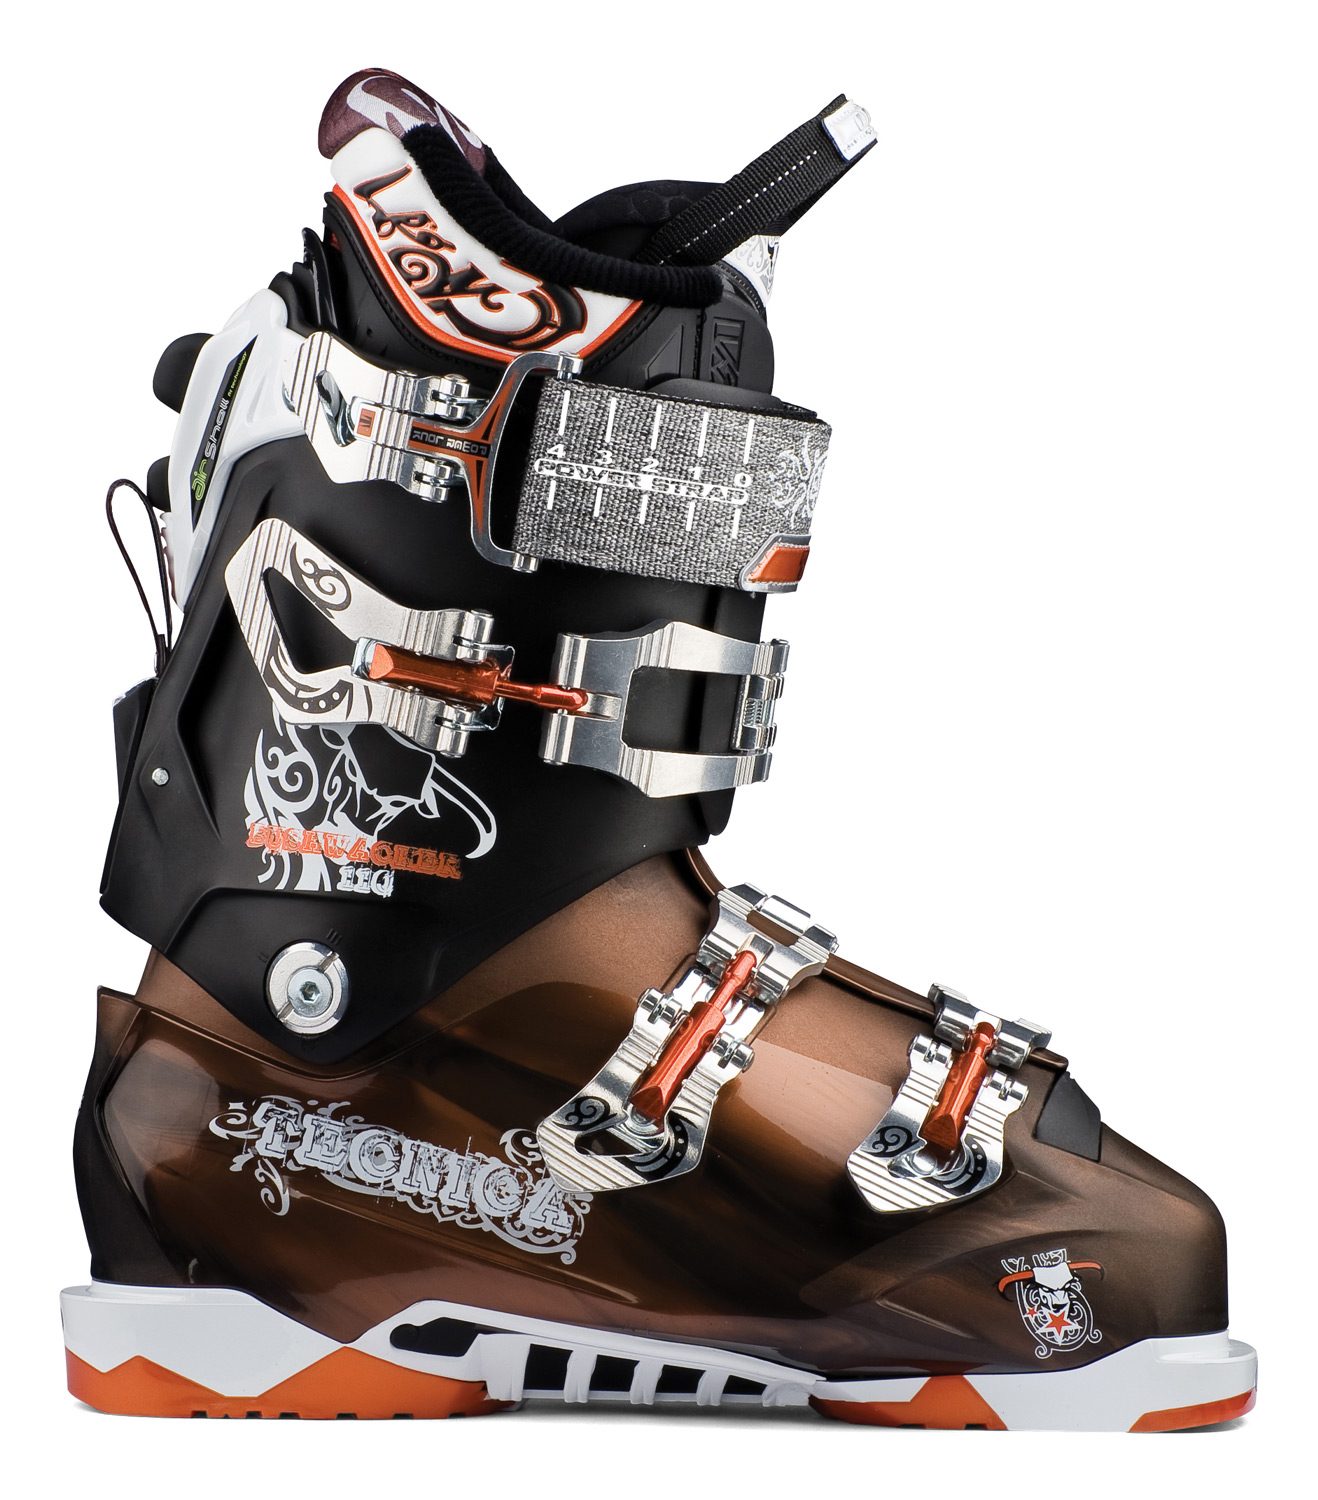 Ski Key Features of the Tecnica Bushwacker Air Shell Ski Boots: Air Shell Interchangeable Soles: Comes with DIN Soles, Tech Compatible Soles available Quick Instep i-Rebound Flex Management Arch Grip Insert Lightweight Triax Cuff Mobility System with Hike Mode Cuff Alignment Velcro Rear Spoiler: adjustable & removabl 45mm Velcro Alu Buckle Closure 3 Alu Buckles Shock absorbing zeppa 9 Teeth Cuff Catch with Walk Position Hinged Instep Catch Lycra Heel Slide Insert Neoprene Toe Box Flex: 110 Last: 98-100mm: AA-D Widths - $439.95